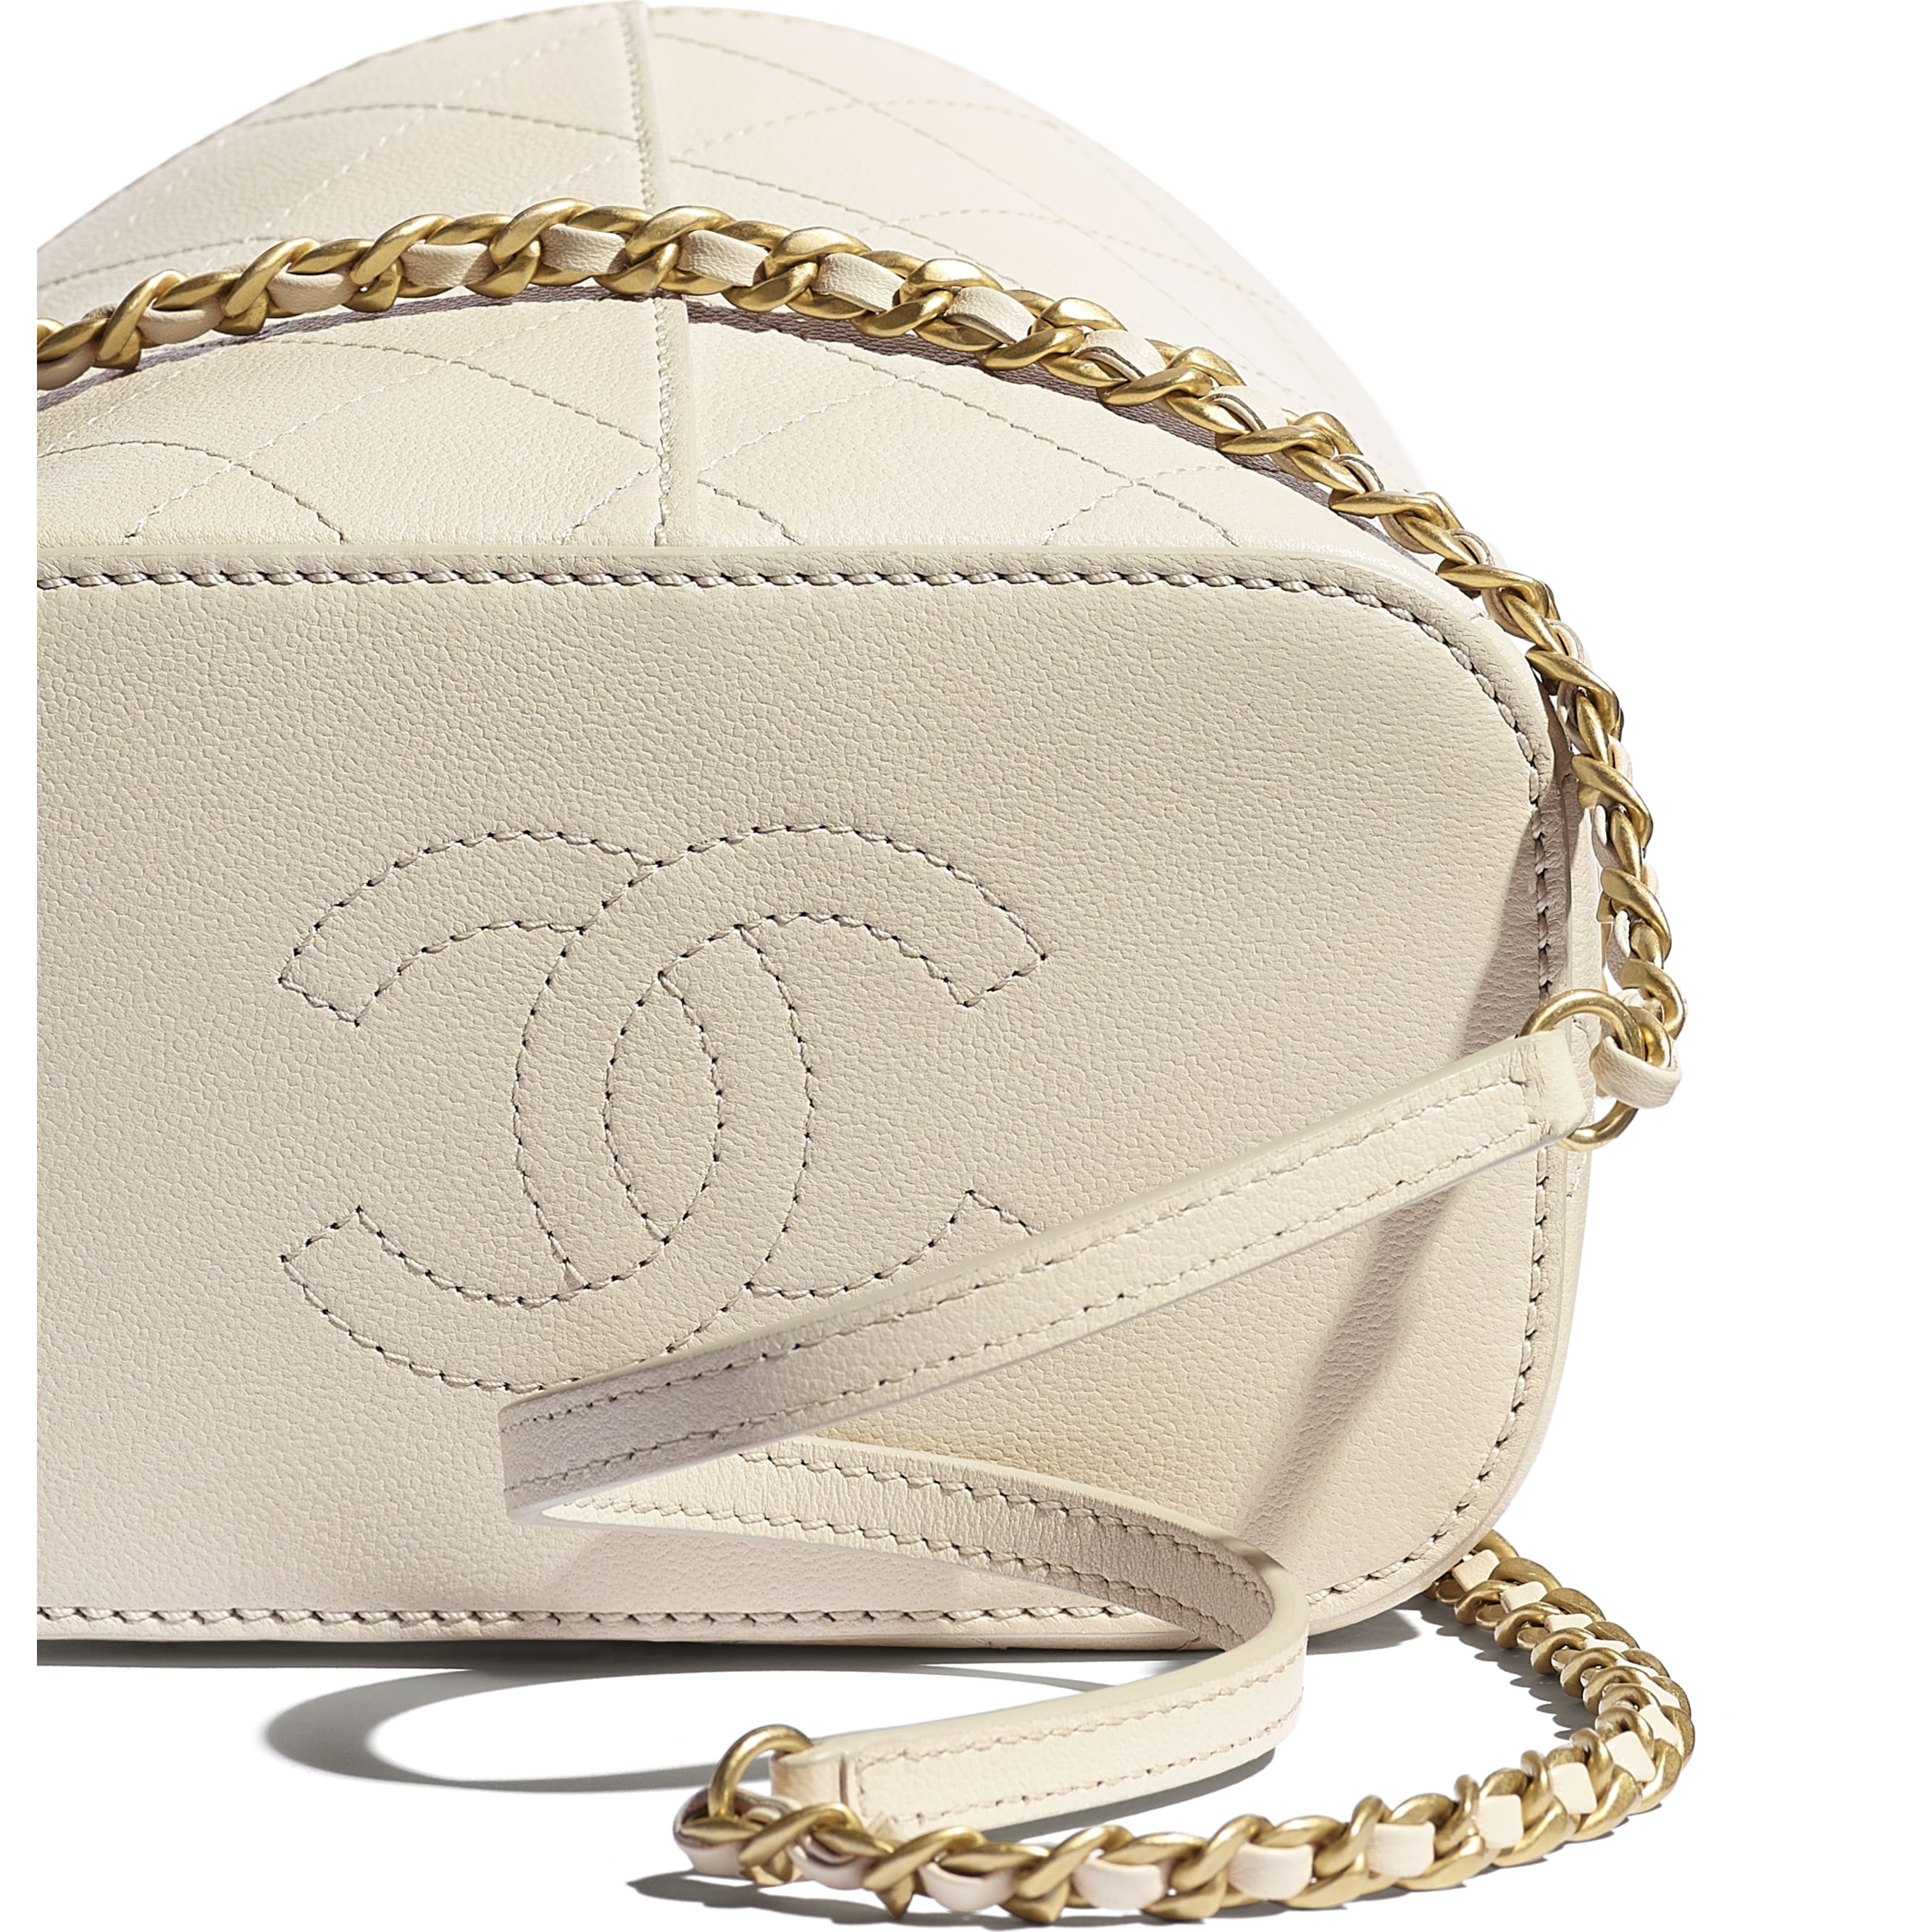 Drawstring Bag - Beige - Grained Lambskin, Smooth Lambskin & Gold-Tone Metal - CHANEL - Extra view - see standard sized version